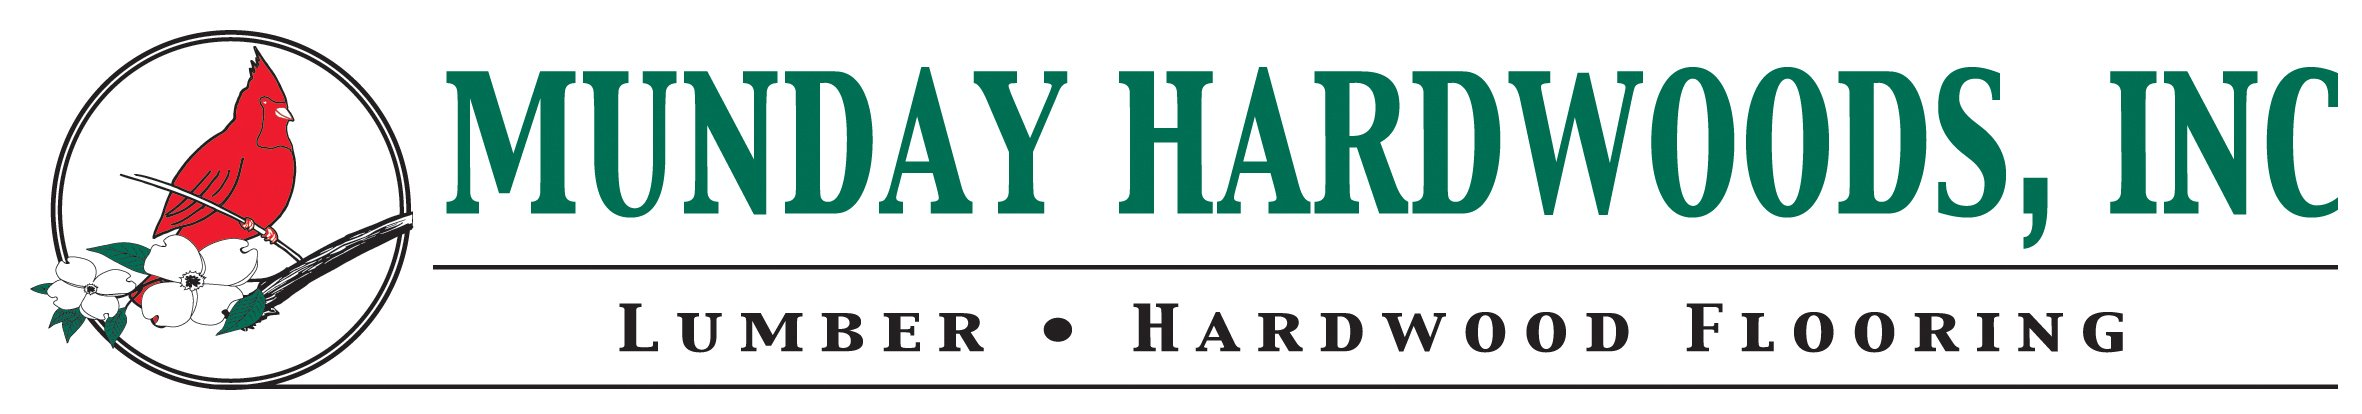 Munday Hardwoods, Inc. Logo